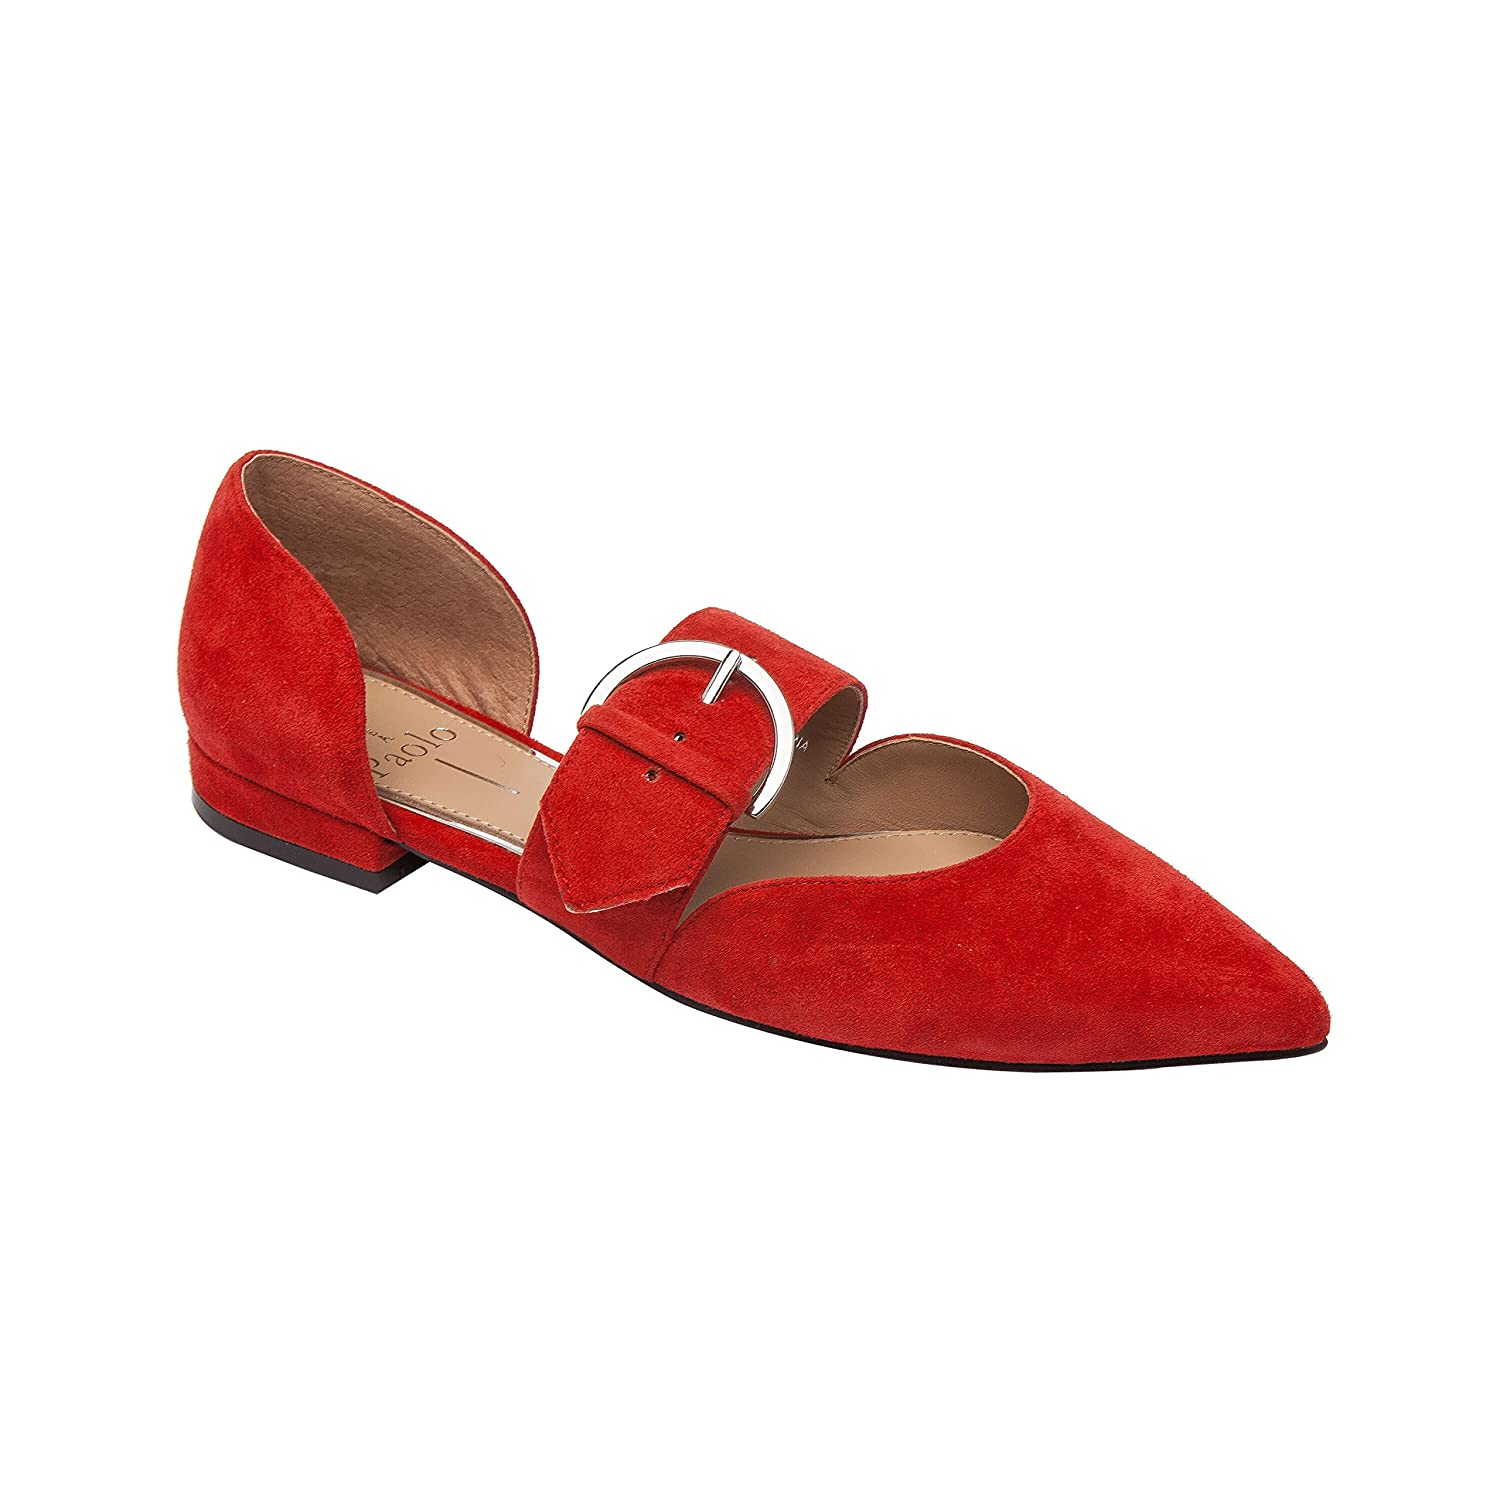 Dean | Women's Two Piece Pointy Toe Comfortable Leather or Suede Ballet Flat B07DM9J4WM 7 M US|Red Suede